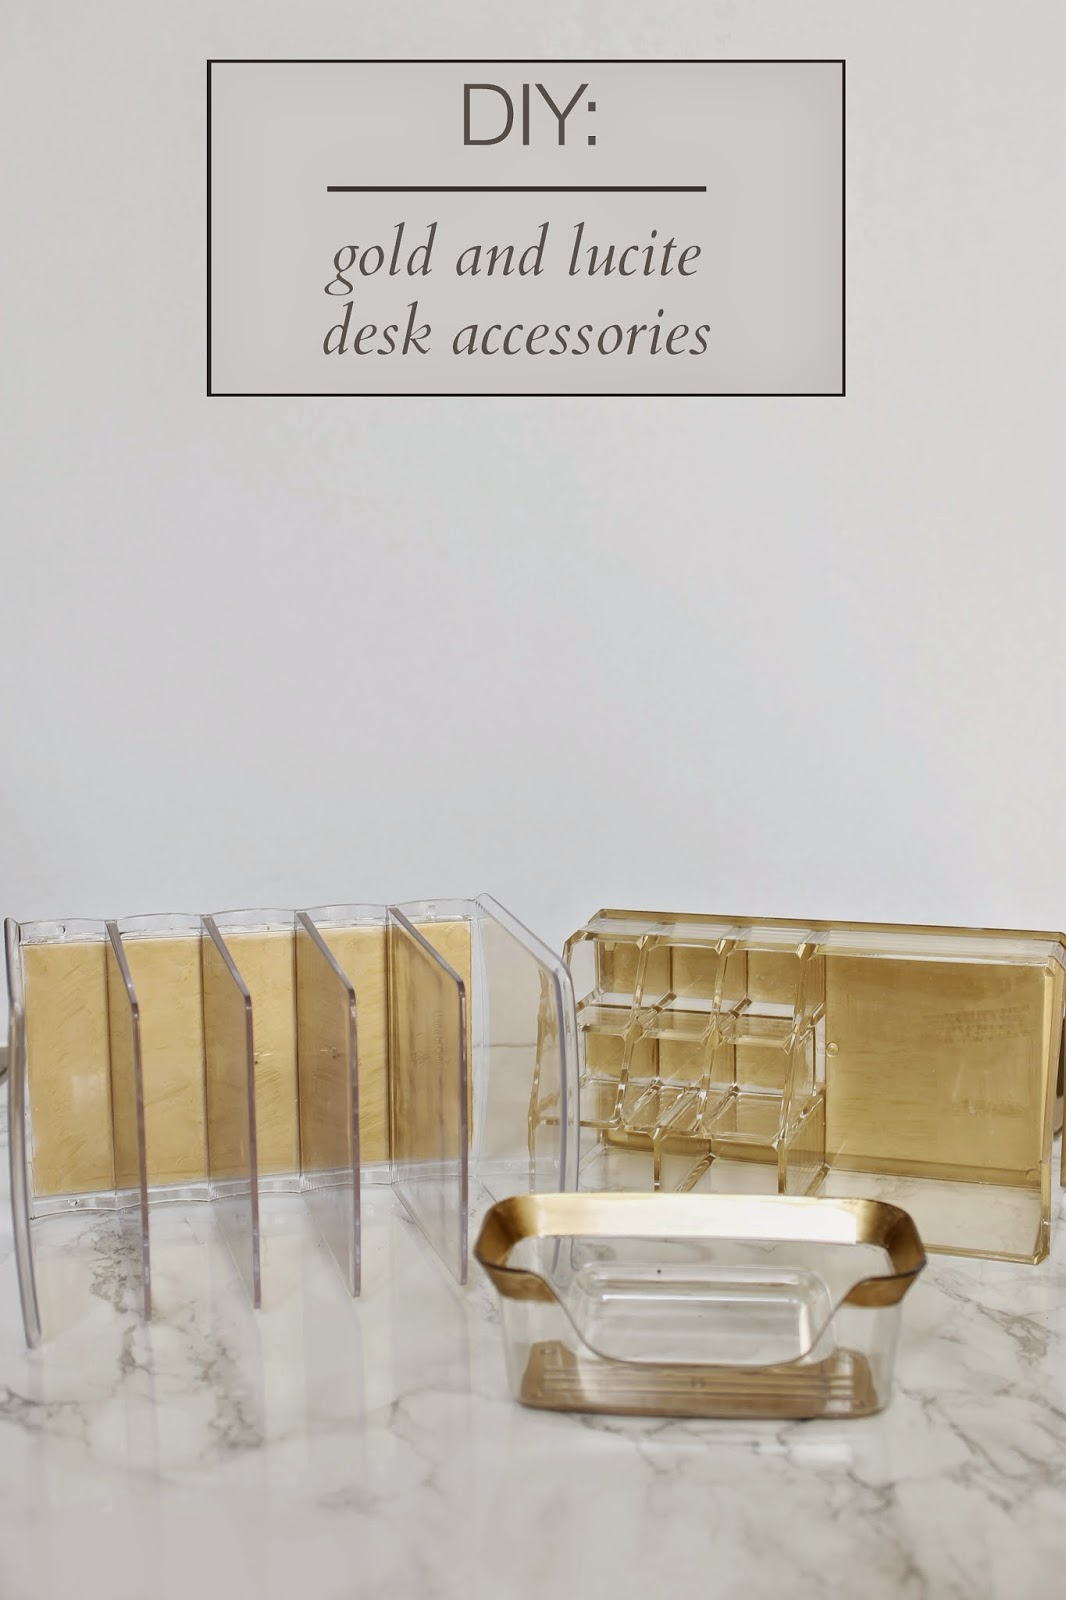 Jws interiors glam diy lucite and gold desk accessories with i purchased the business card holder and letter organizer at target and the multi purpose acrylic organizer at tj maxx reheart Images